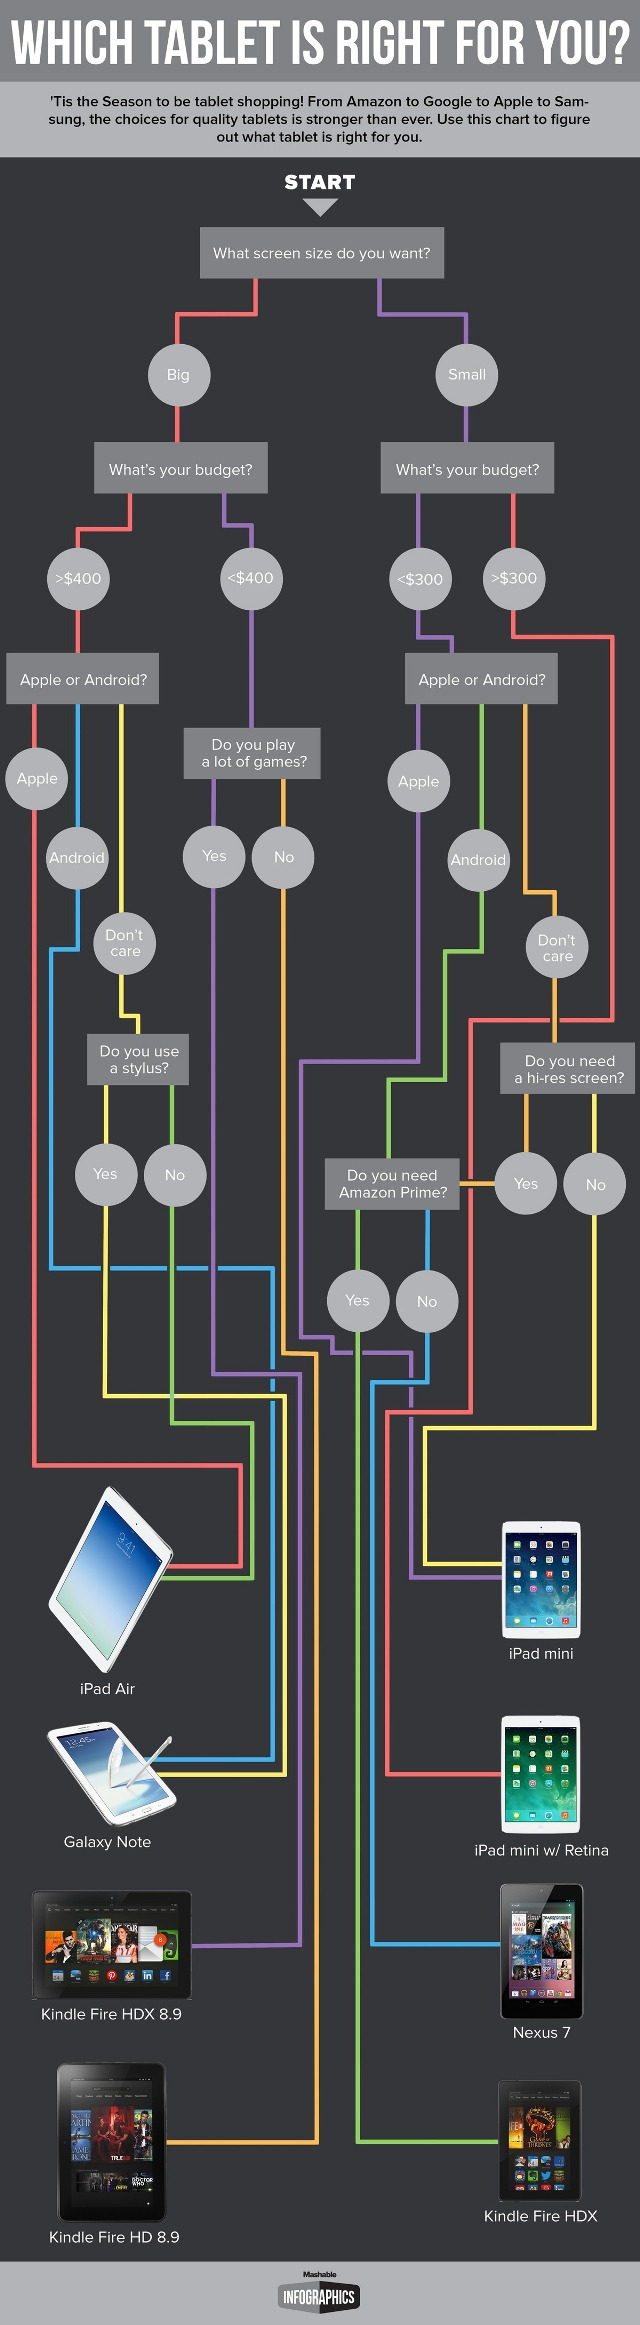 What-Tablet-Are-You-Flowchart-REVISED-THURSDAY